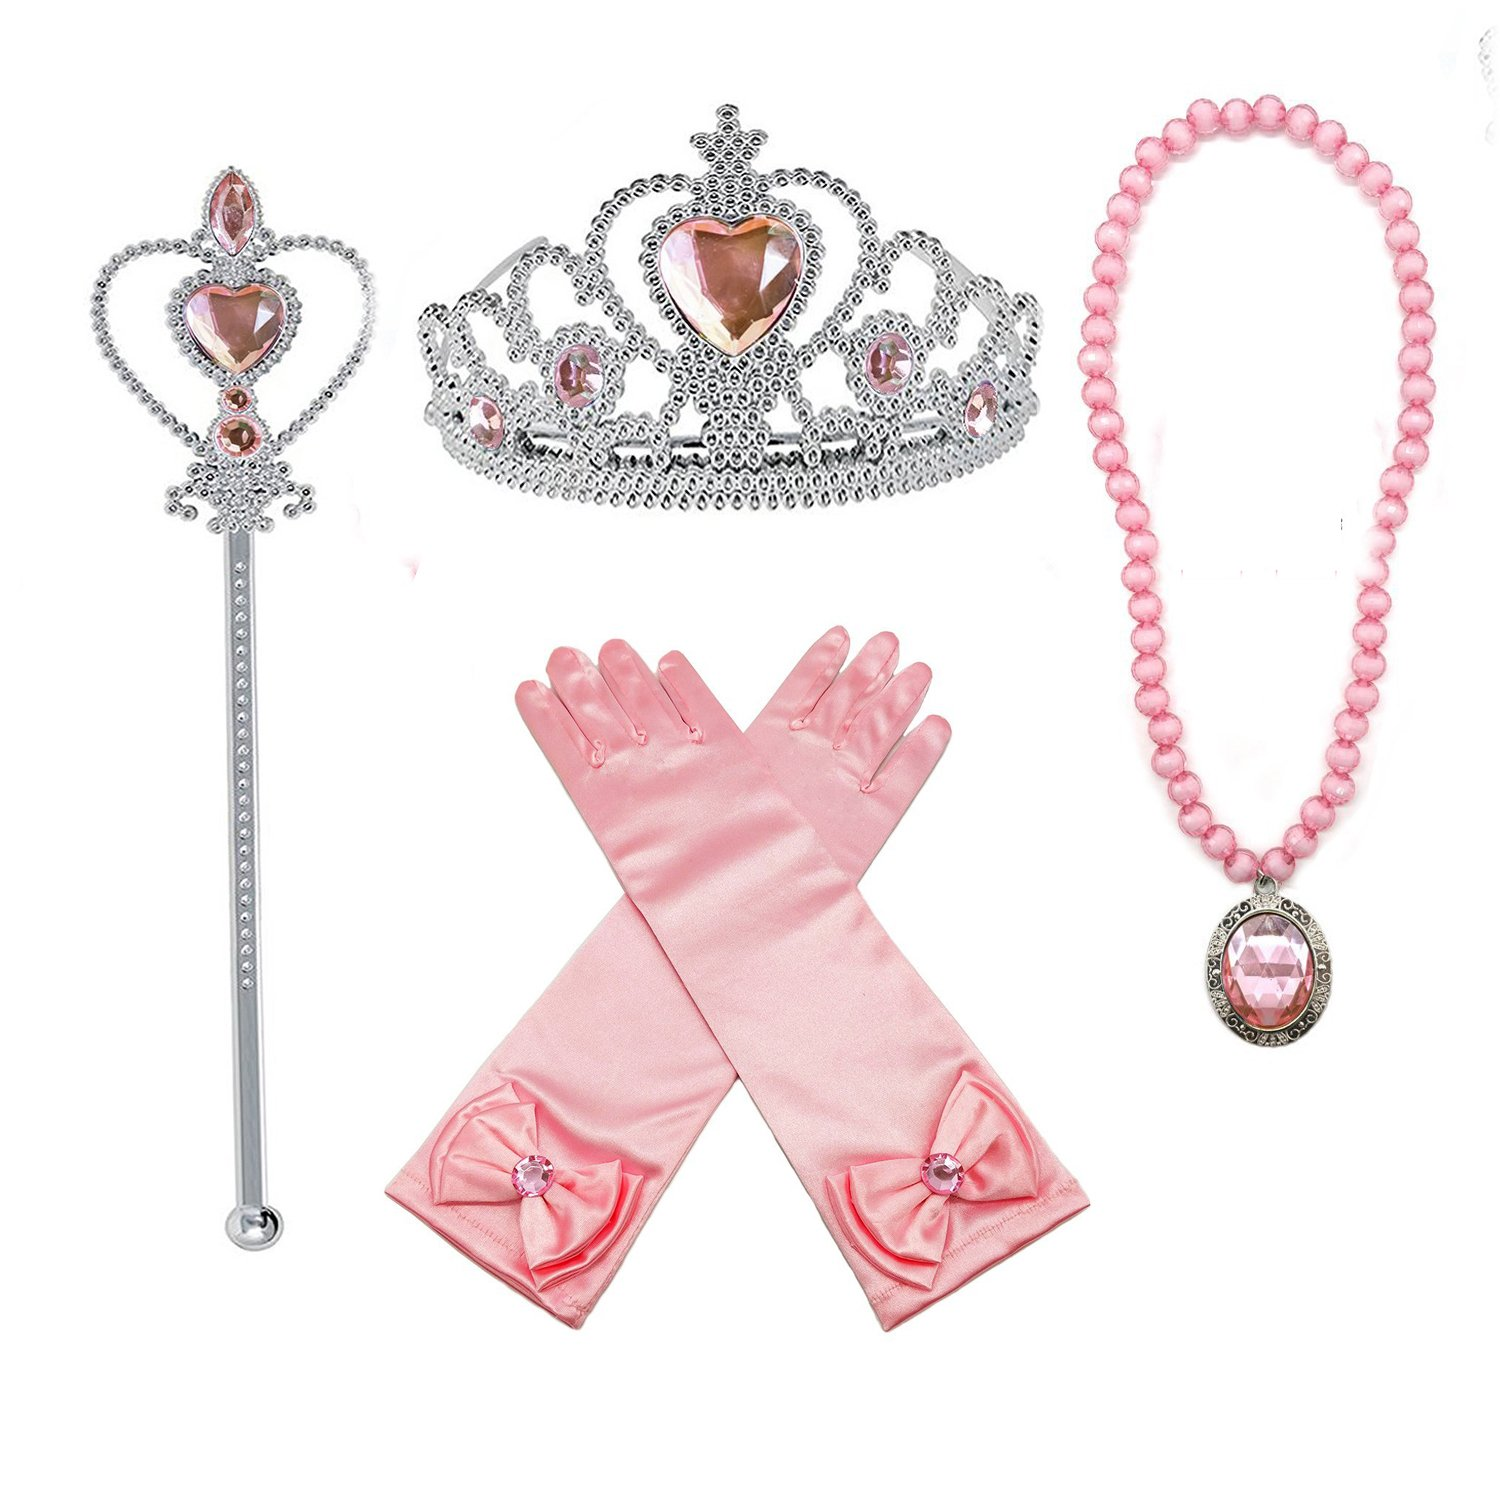 Orgrimmar Princess Dress up Accessories Gloves Tiara Crown Wand Necklaces Presents for Kids Girls (Yellow)